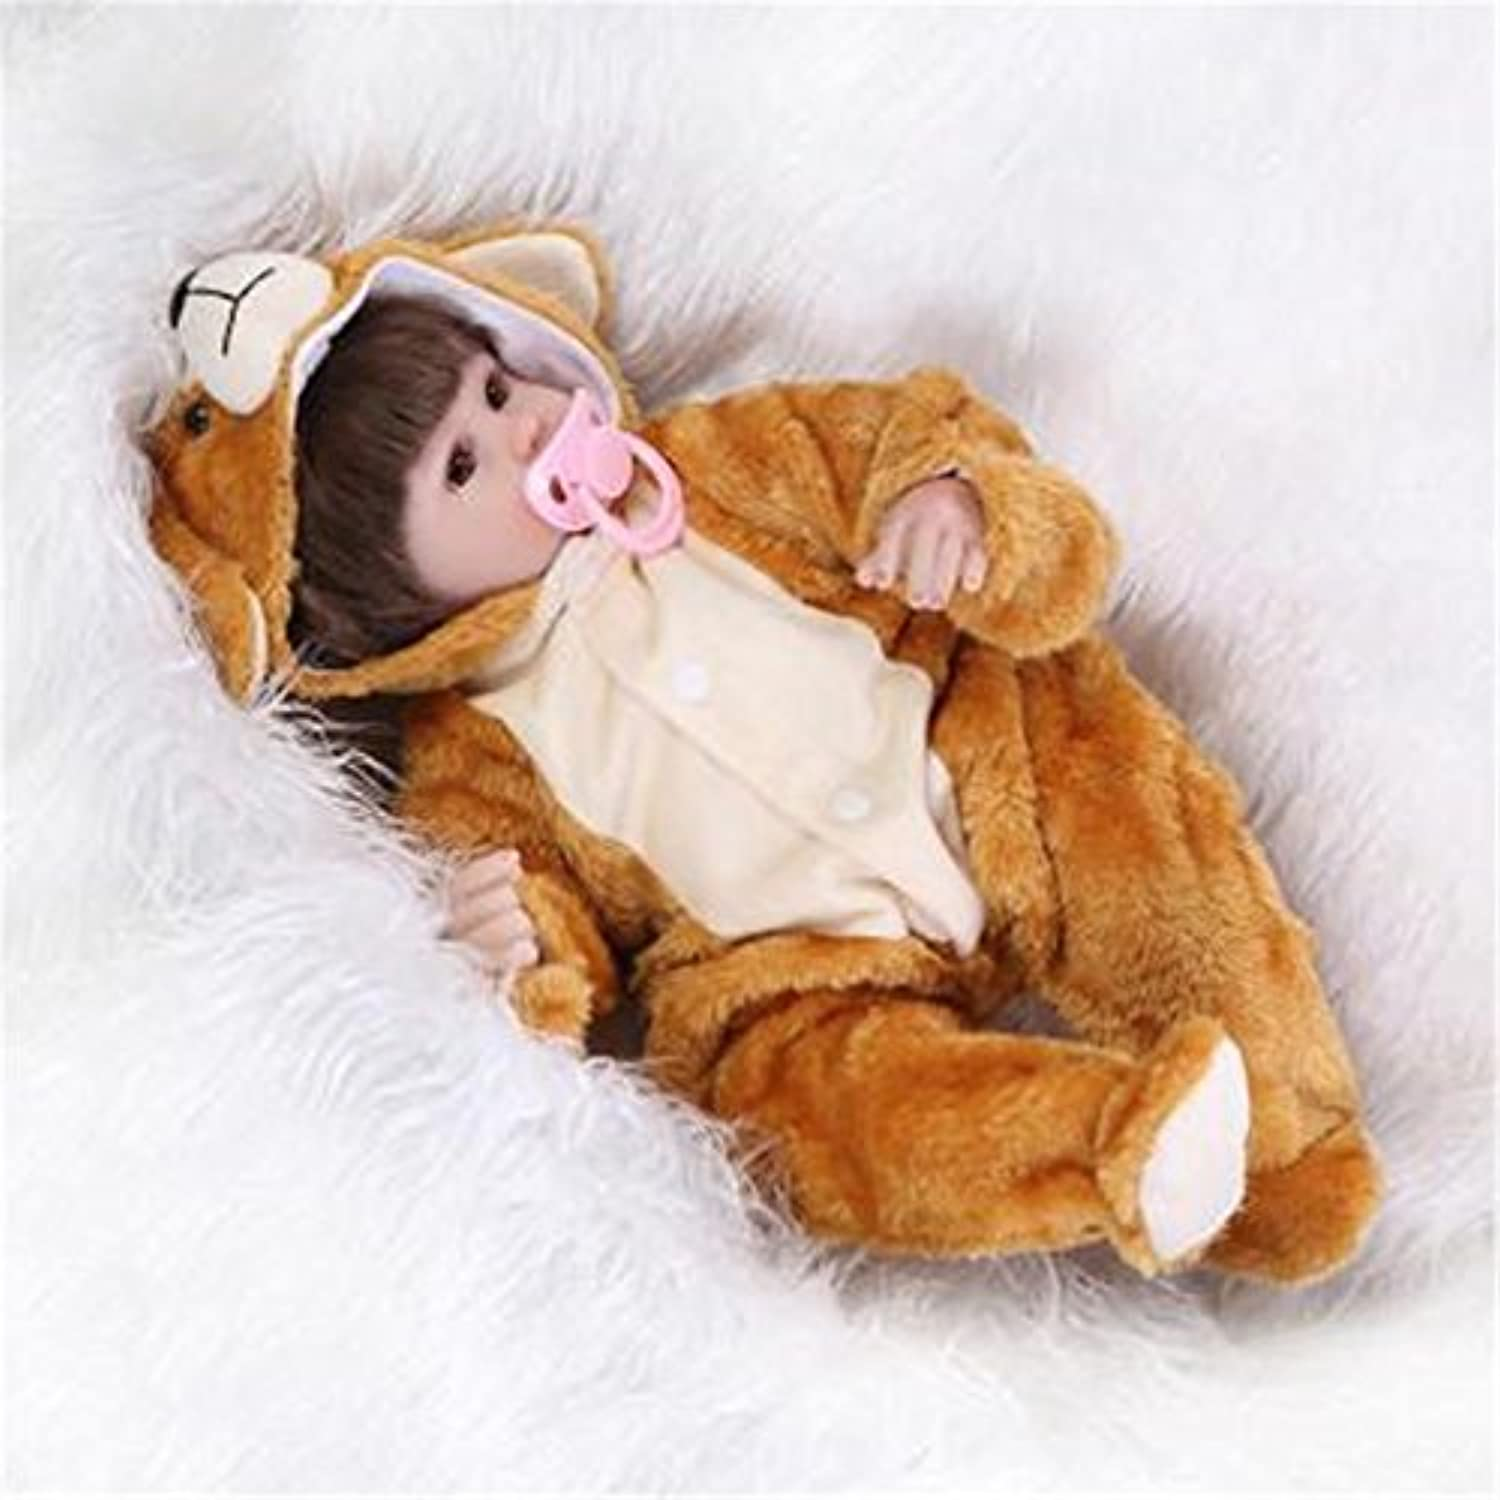 SanyDoll Reborn Baby Doll Soft Silicone 18inch 45cm Magnetic Lovely Lifelike Cute Lovely Holiday gifts children's